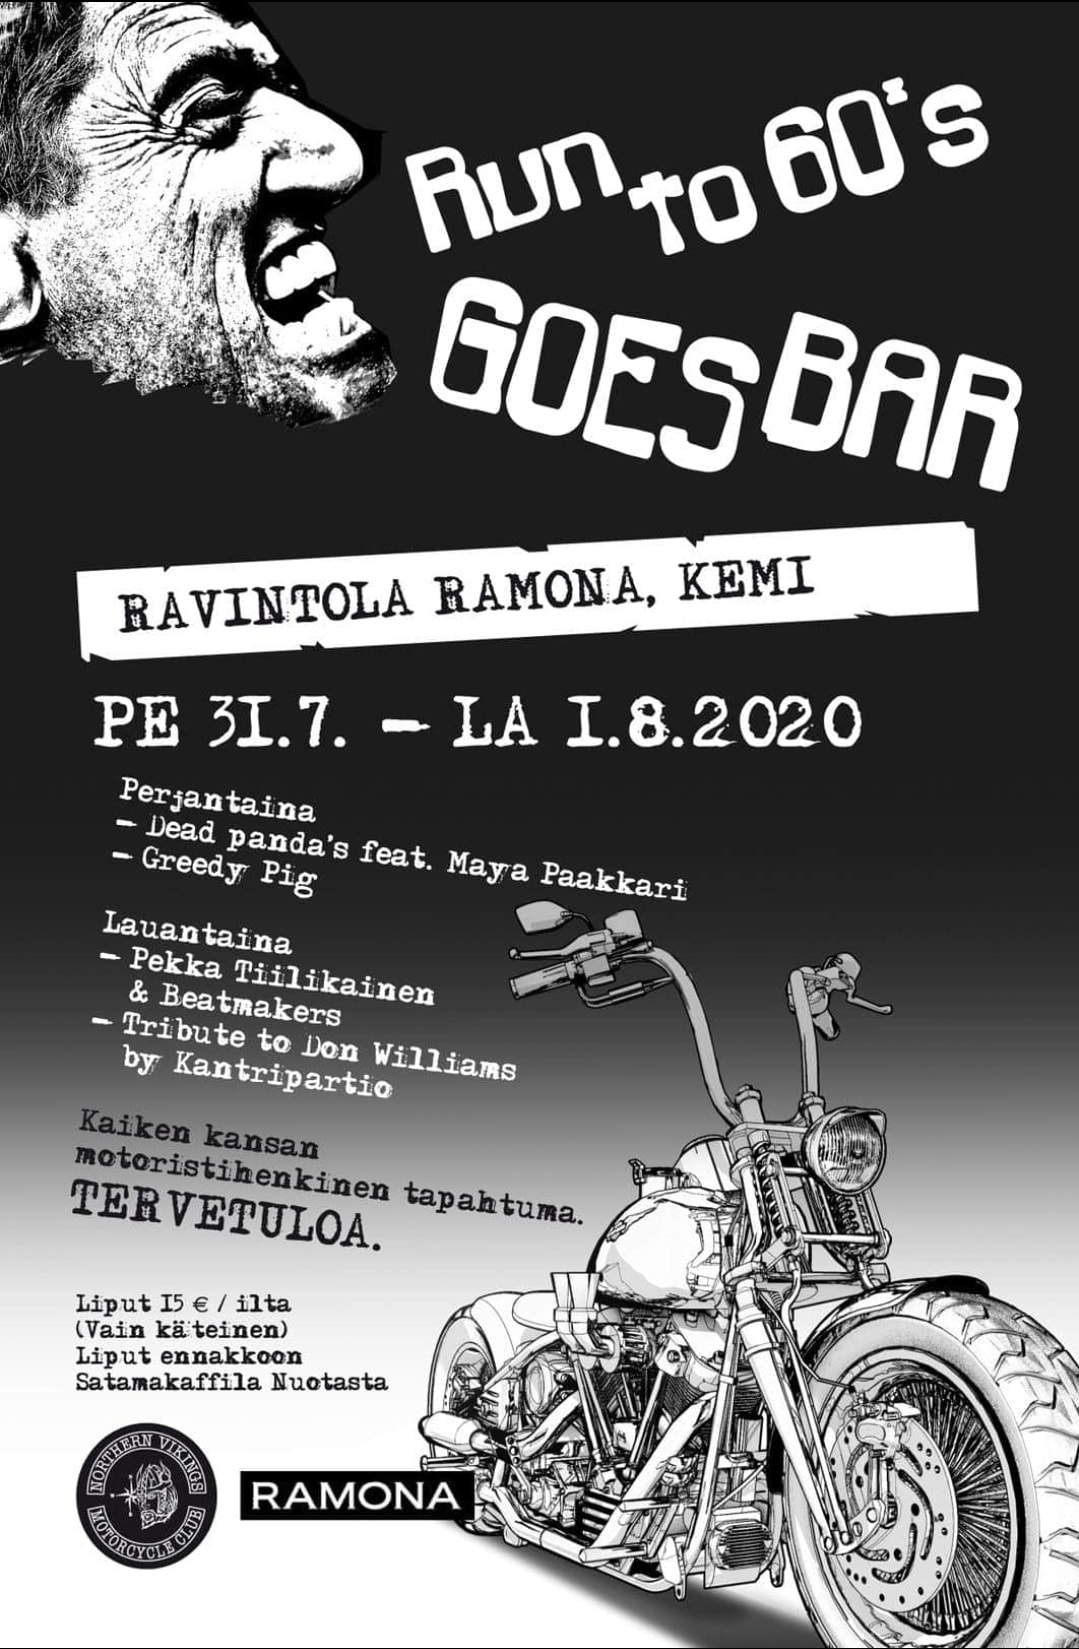 Run To 60's goes bar 2020